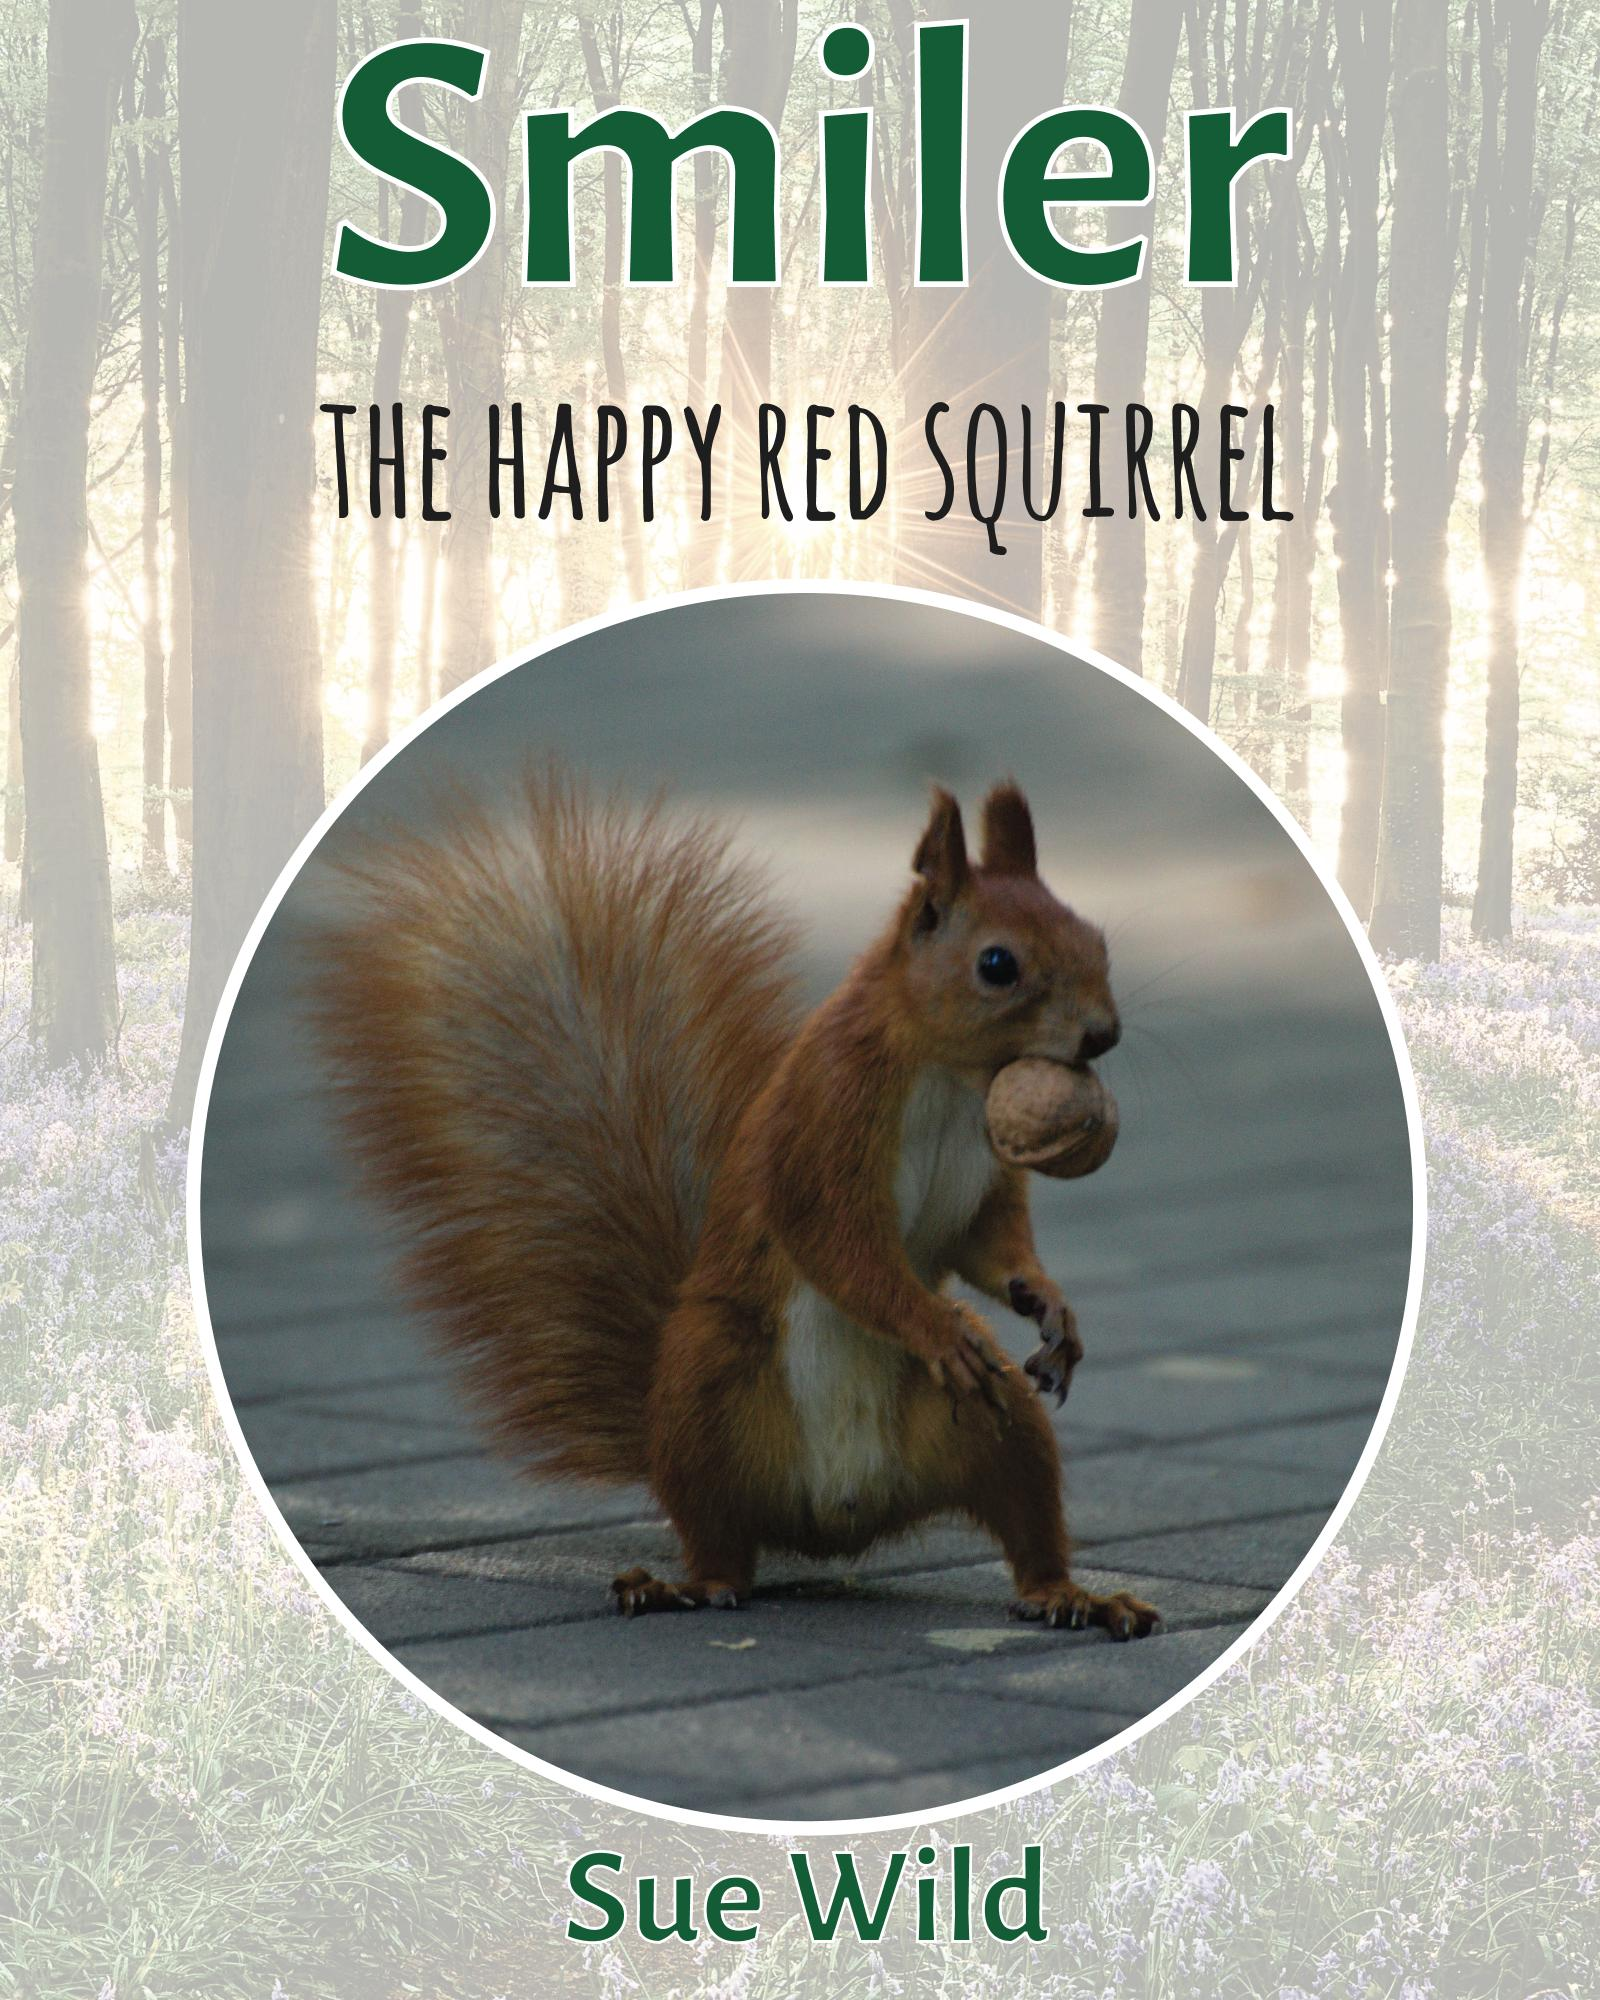 U.K. wildlife children's bedtime stories Smiler the happy red squirrel